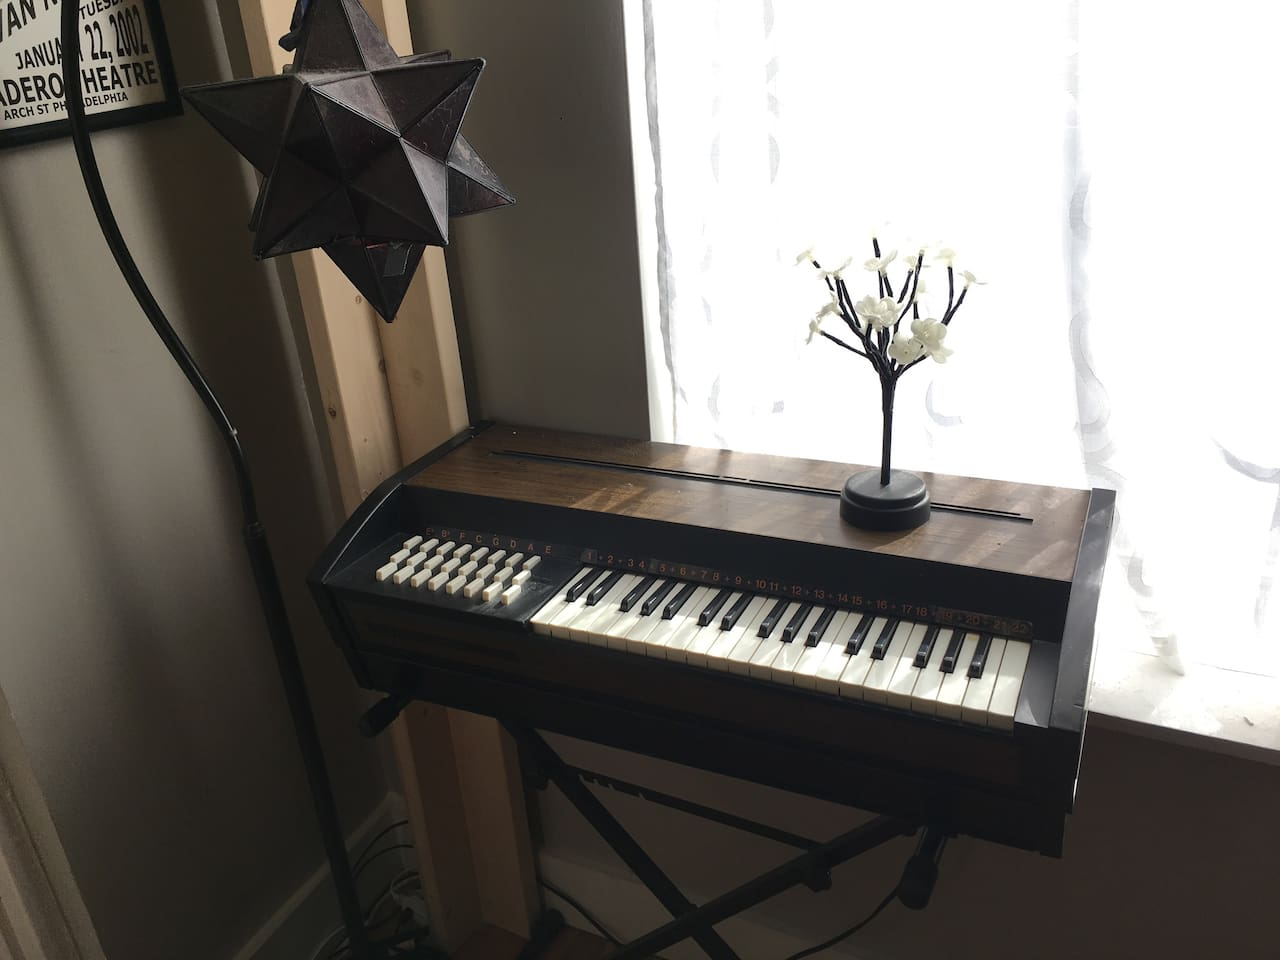 Vintage Reed Organ for your musical pleasure!